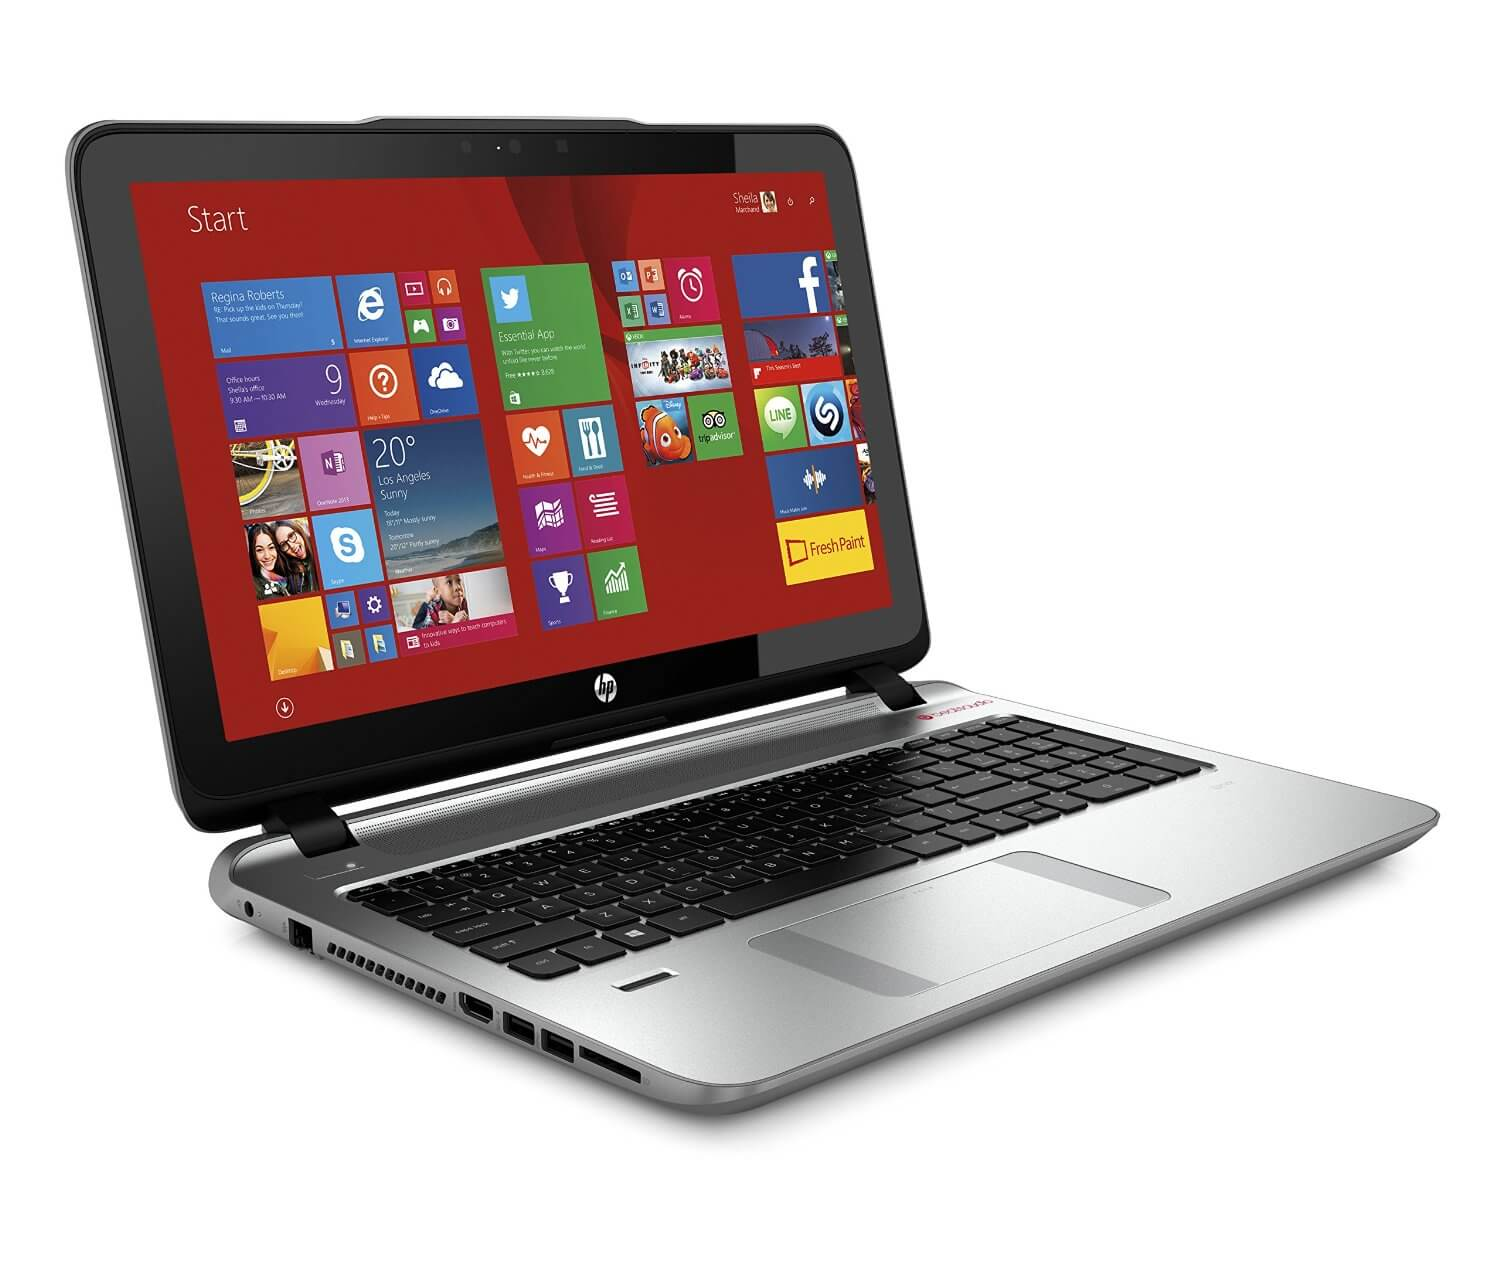 HP ENVY 15-v010nr laptop